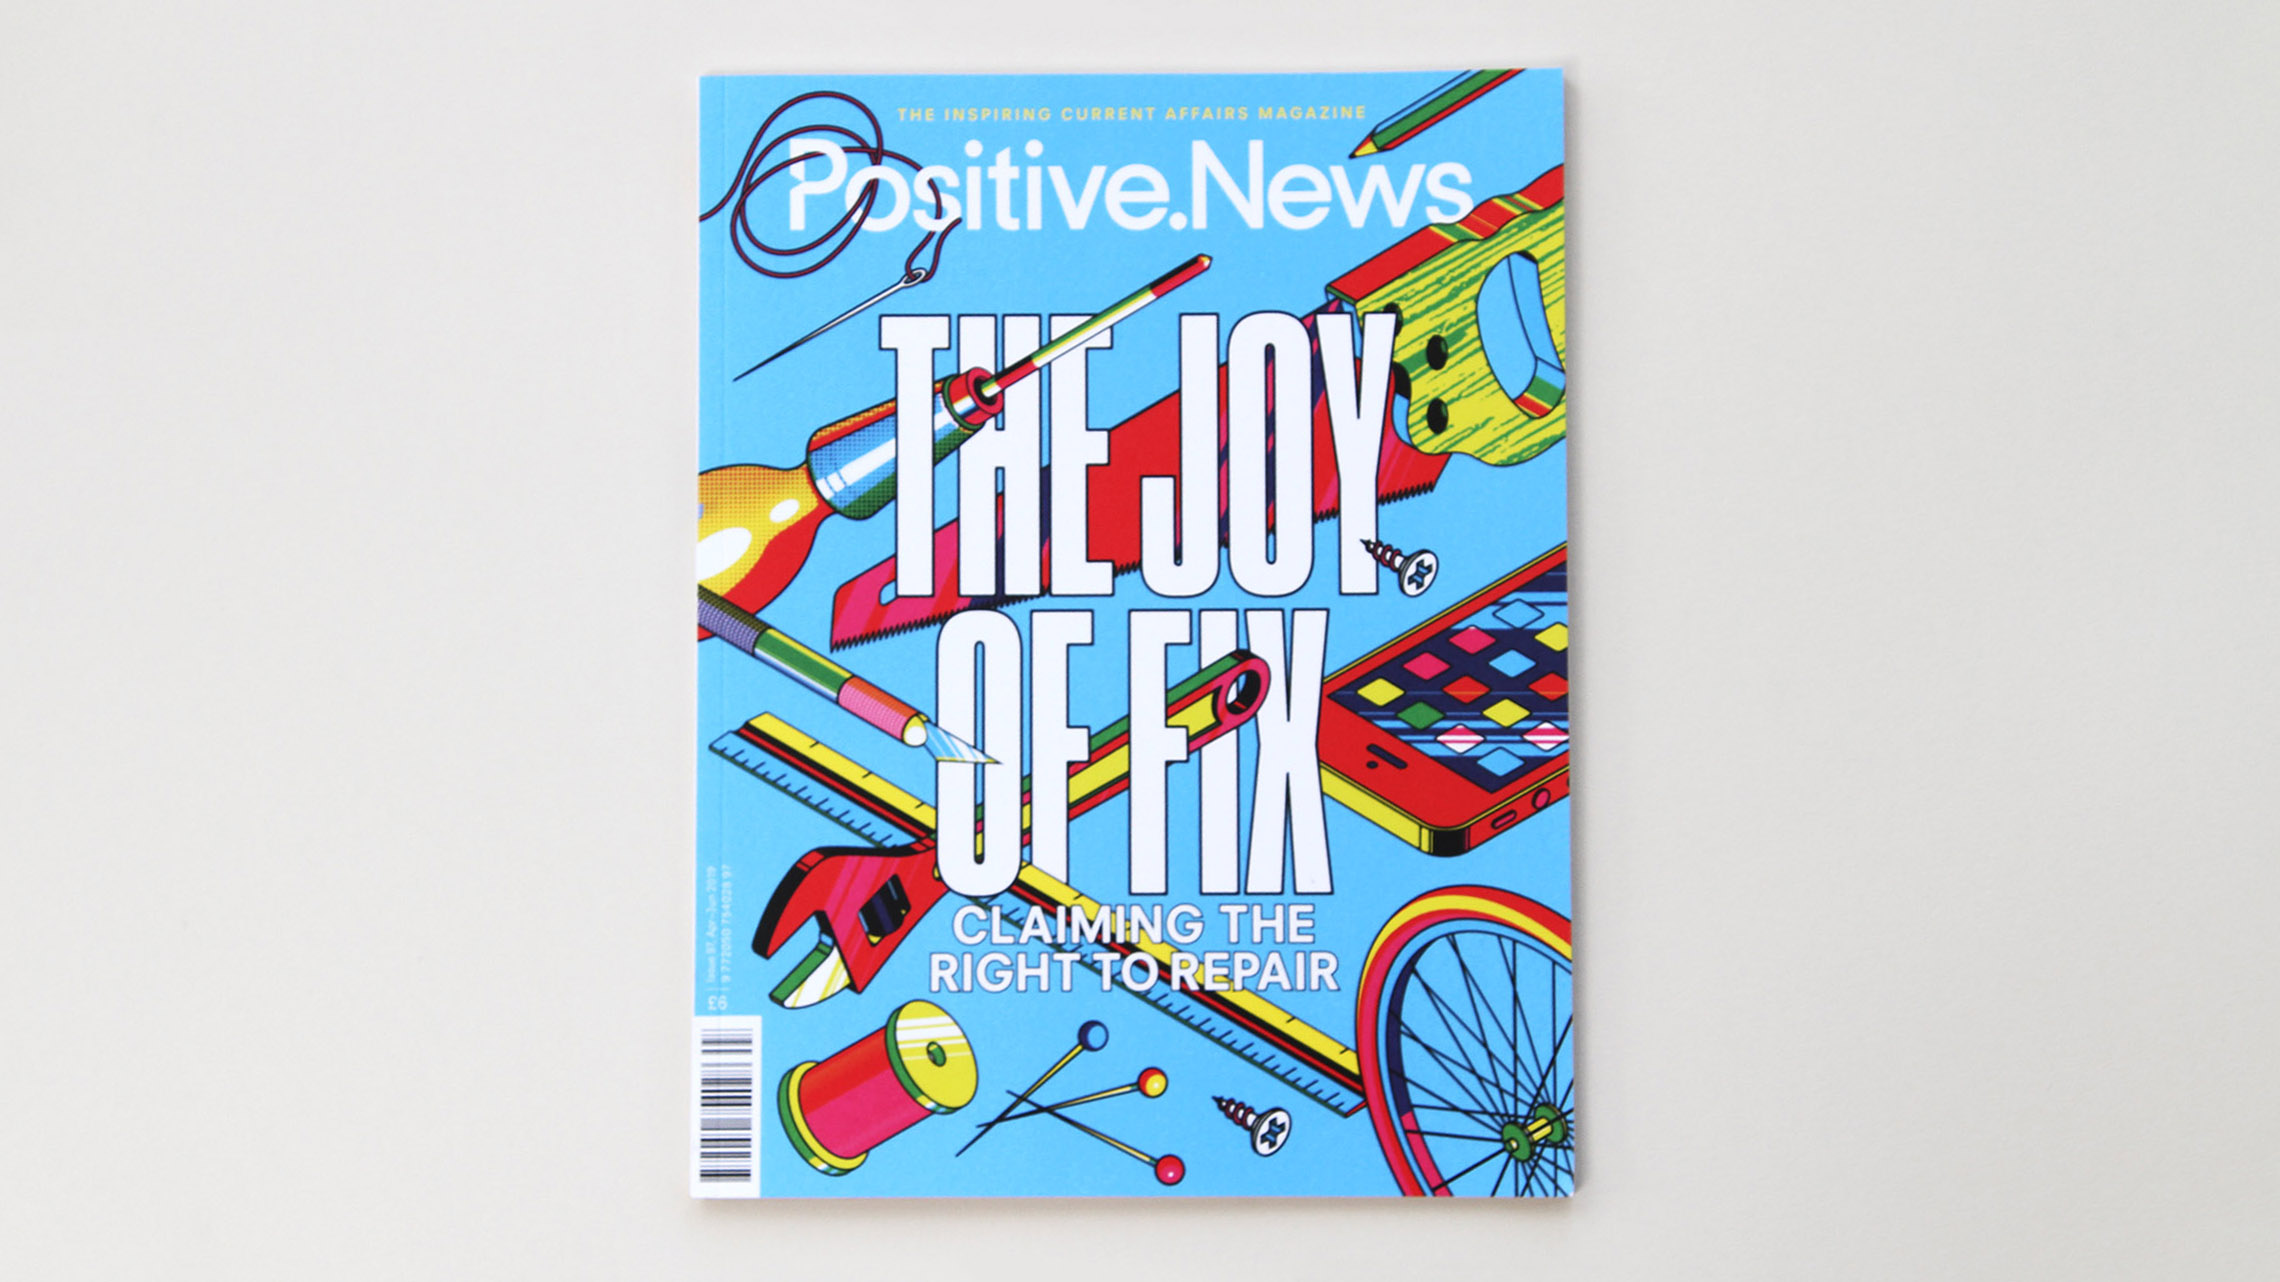 Positive News magazine: carbon neutral printing